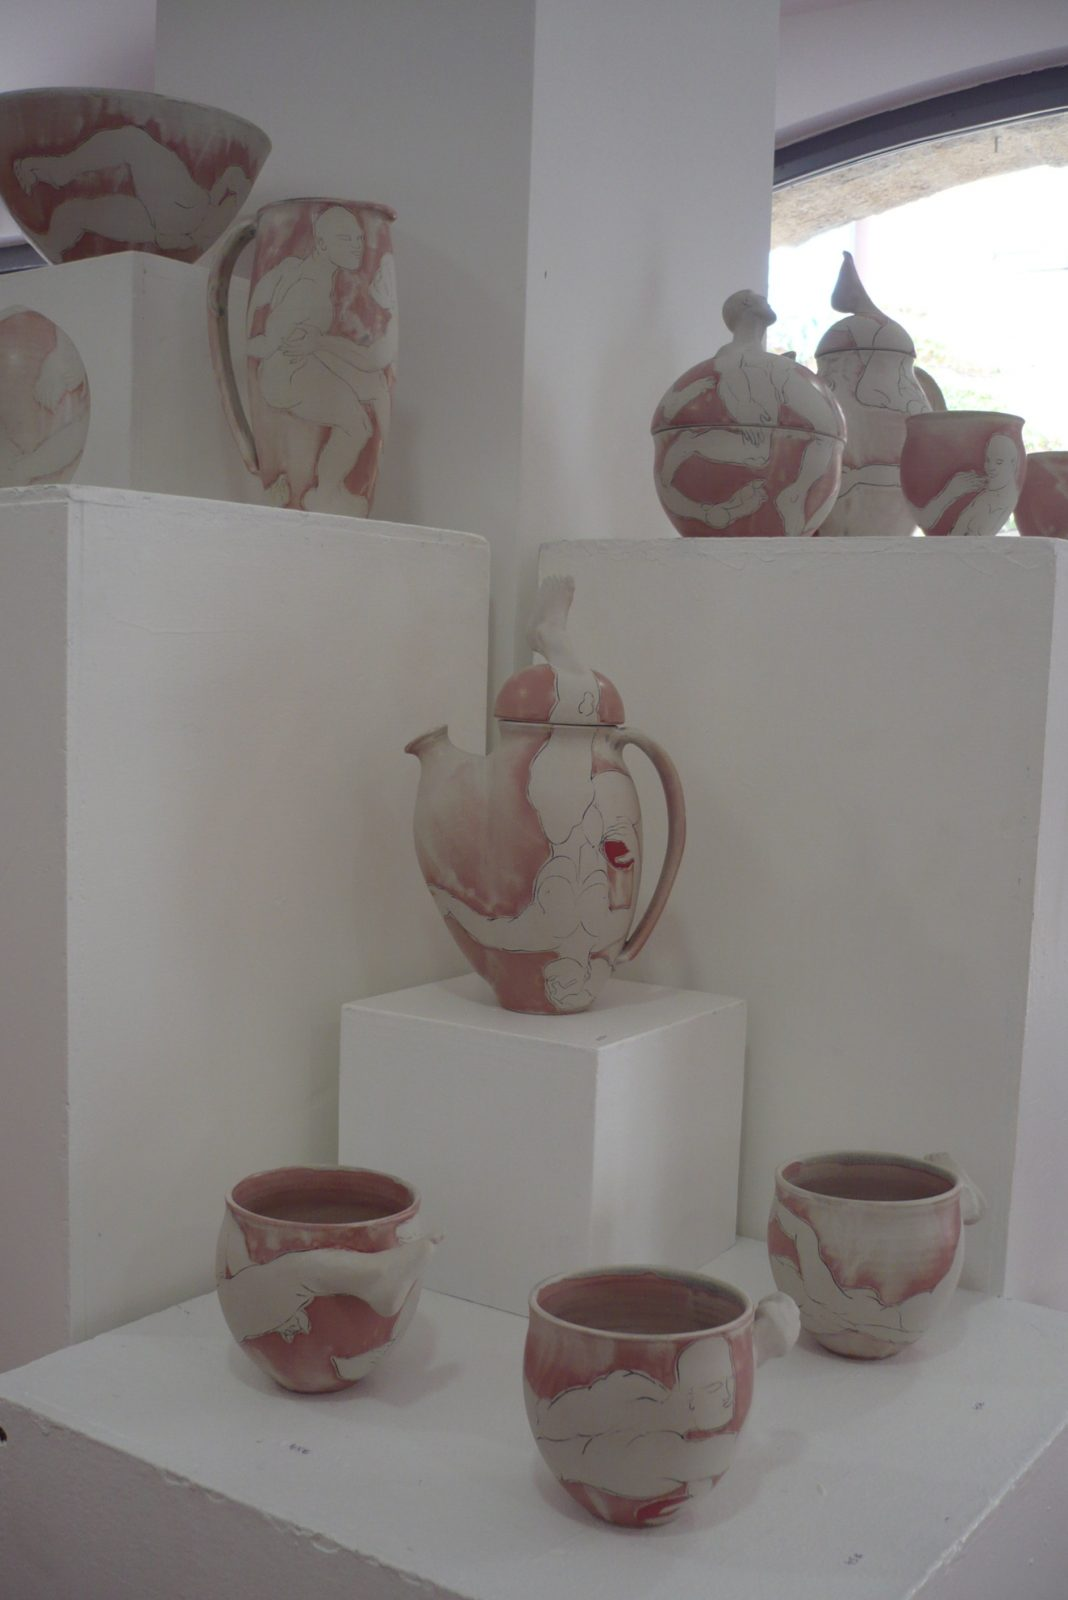 Démonstration du garnissage – Atelier 45 ceramic (4)